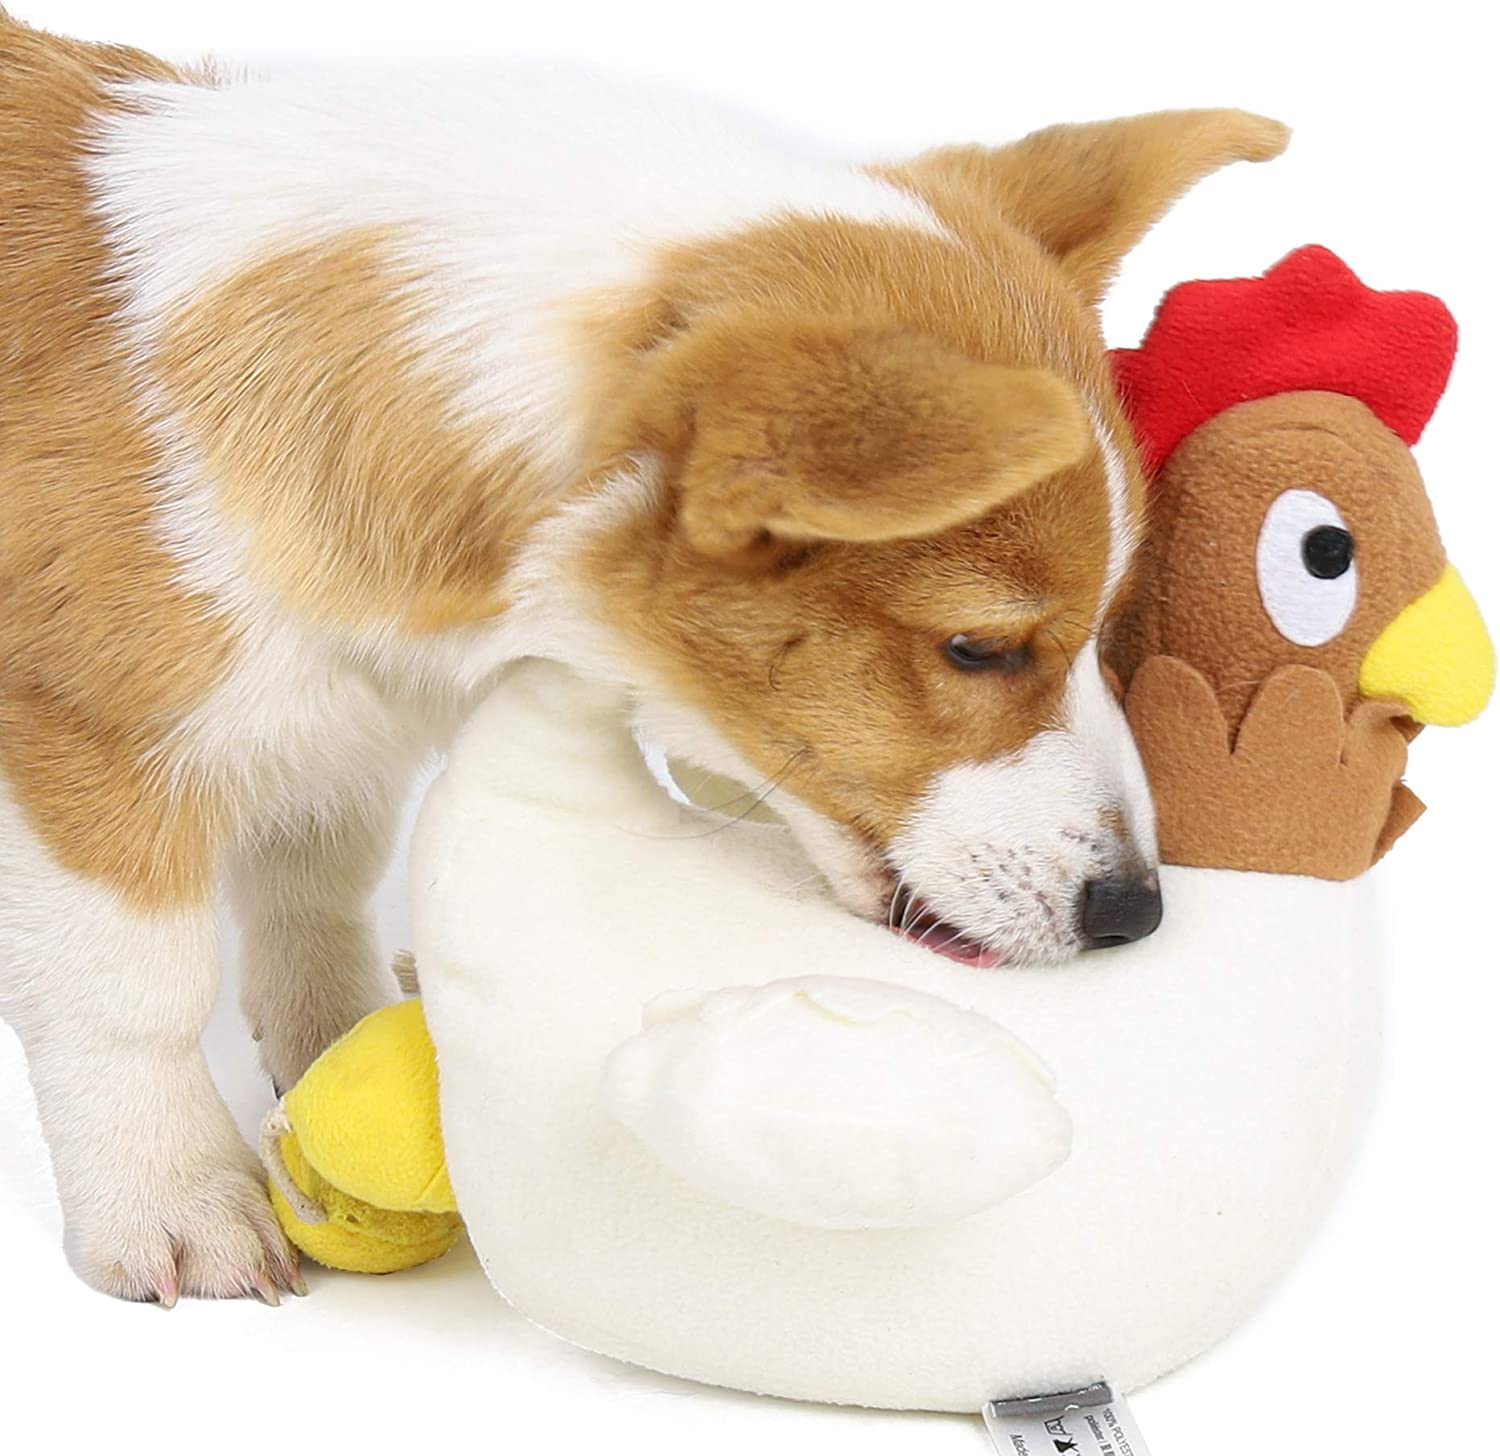 Dog Sniffing Training Toy, Chicken Laying Egg Puppy Snuffle Feeding Mat, Pet Interactive Puzzle IQ Squeaky Toy, Pet Activity Stuffed Toy for Play, Accompany, Stress Release, Increase Fun, Be Smarter